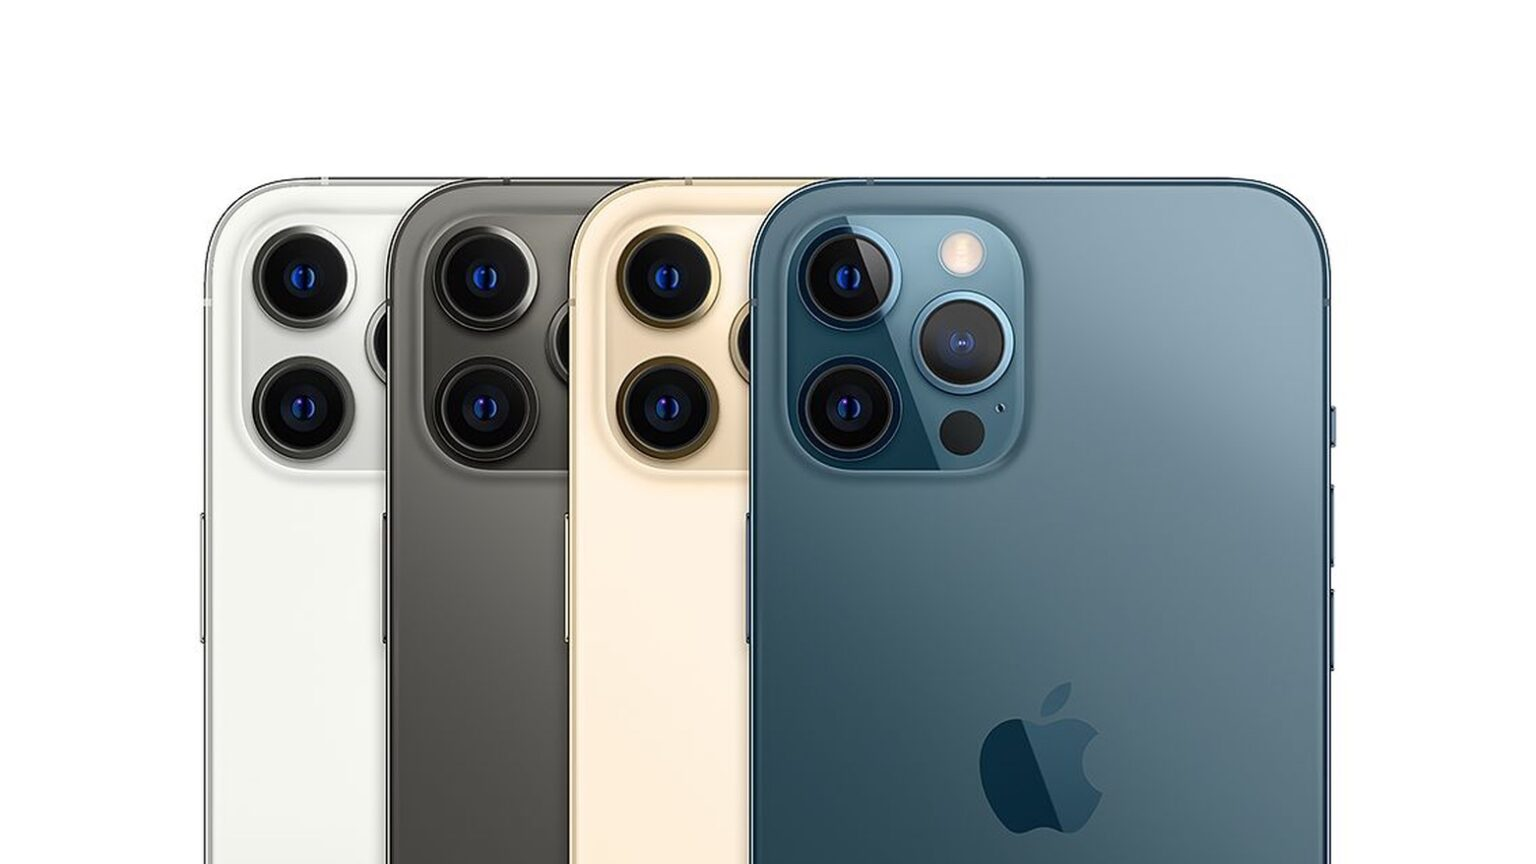 iPhone 12 Pro series include cameras tat support ProRAW